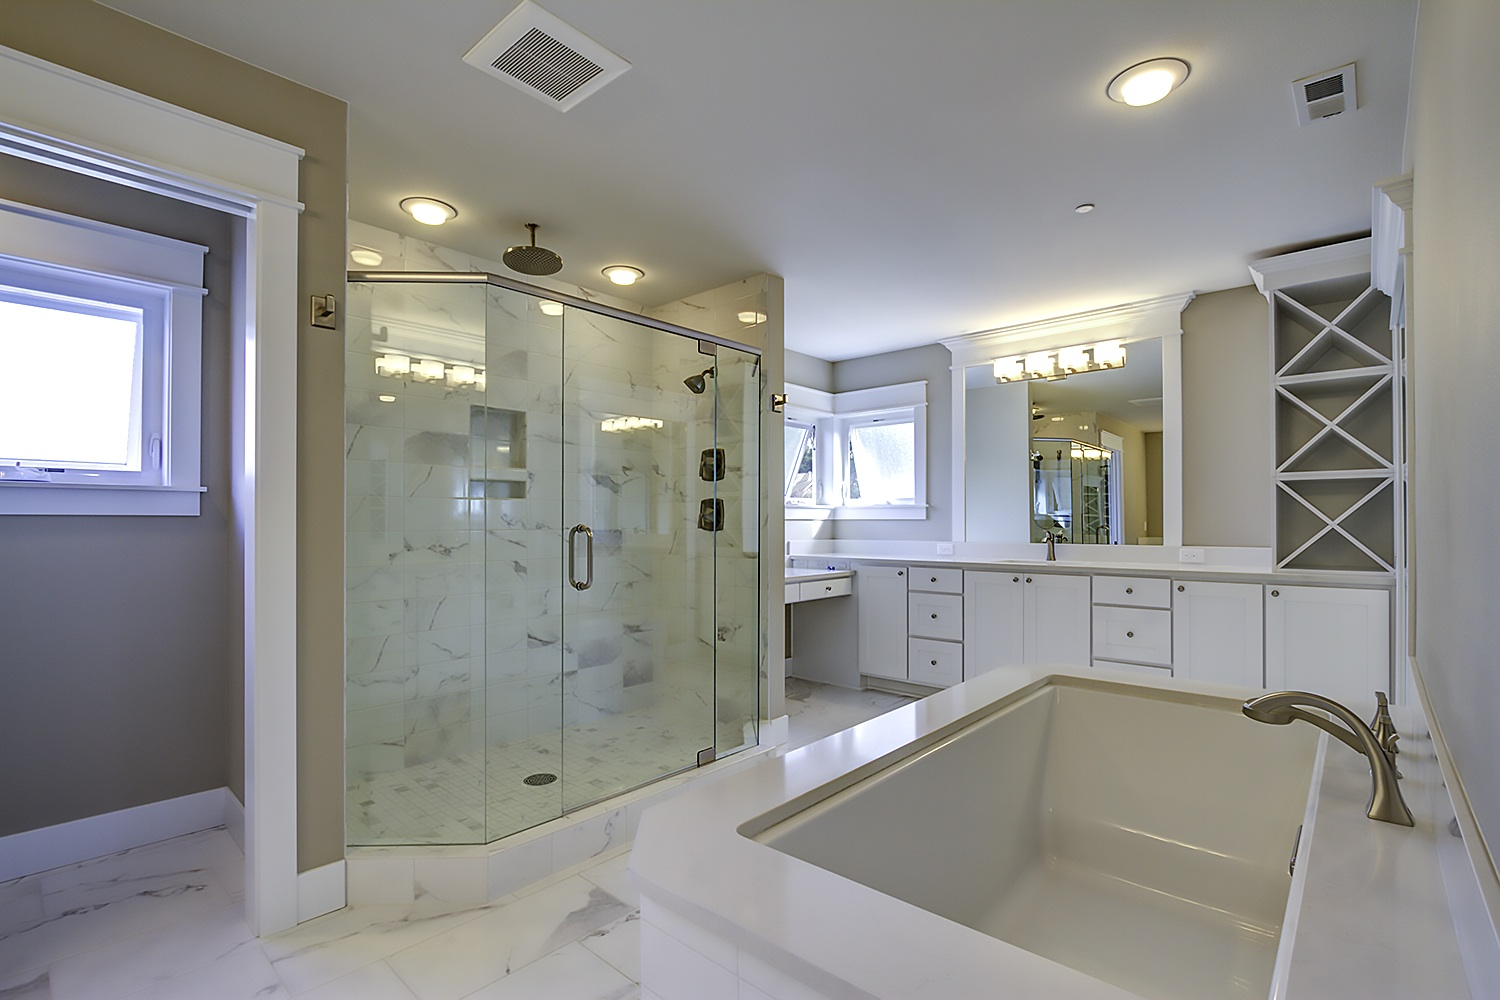 Updating bathroom cabinets specially for anchorage deebonk for Bathroom remodel anchorage